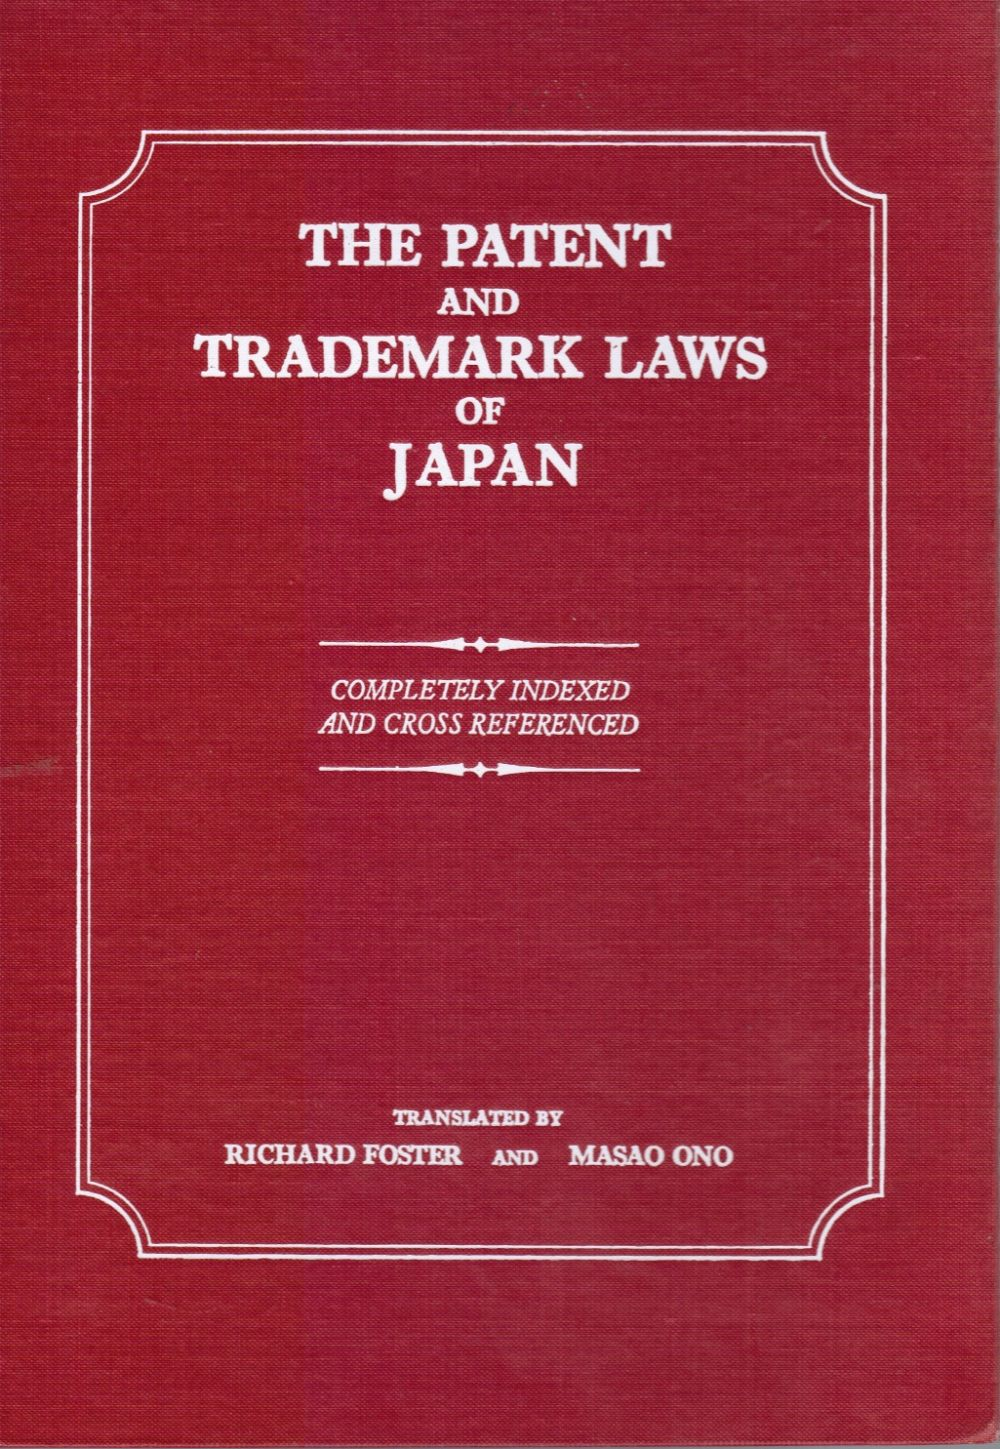 Image for The Patent and Trademark Laws of Japan Completely Indexed and Cross Referenced